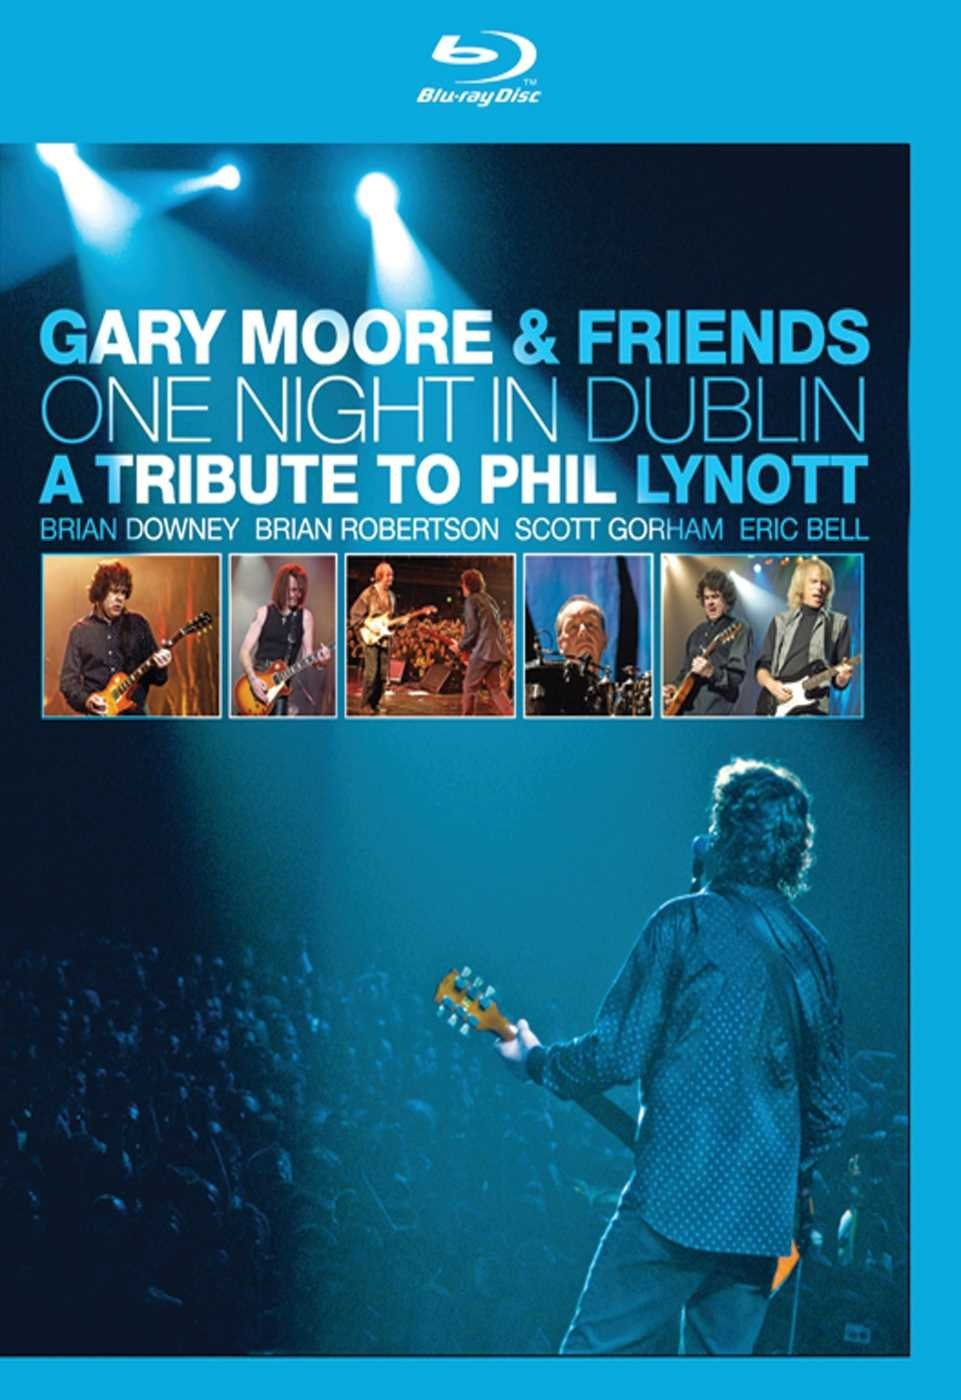 Blu-ray : Gary Moore & Friends - One Night in Dublin-A Tribute to Phil Lynott (United Kingdom - Import)